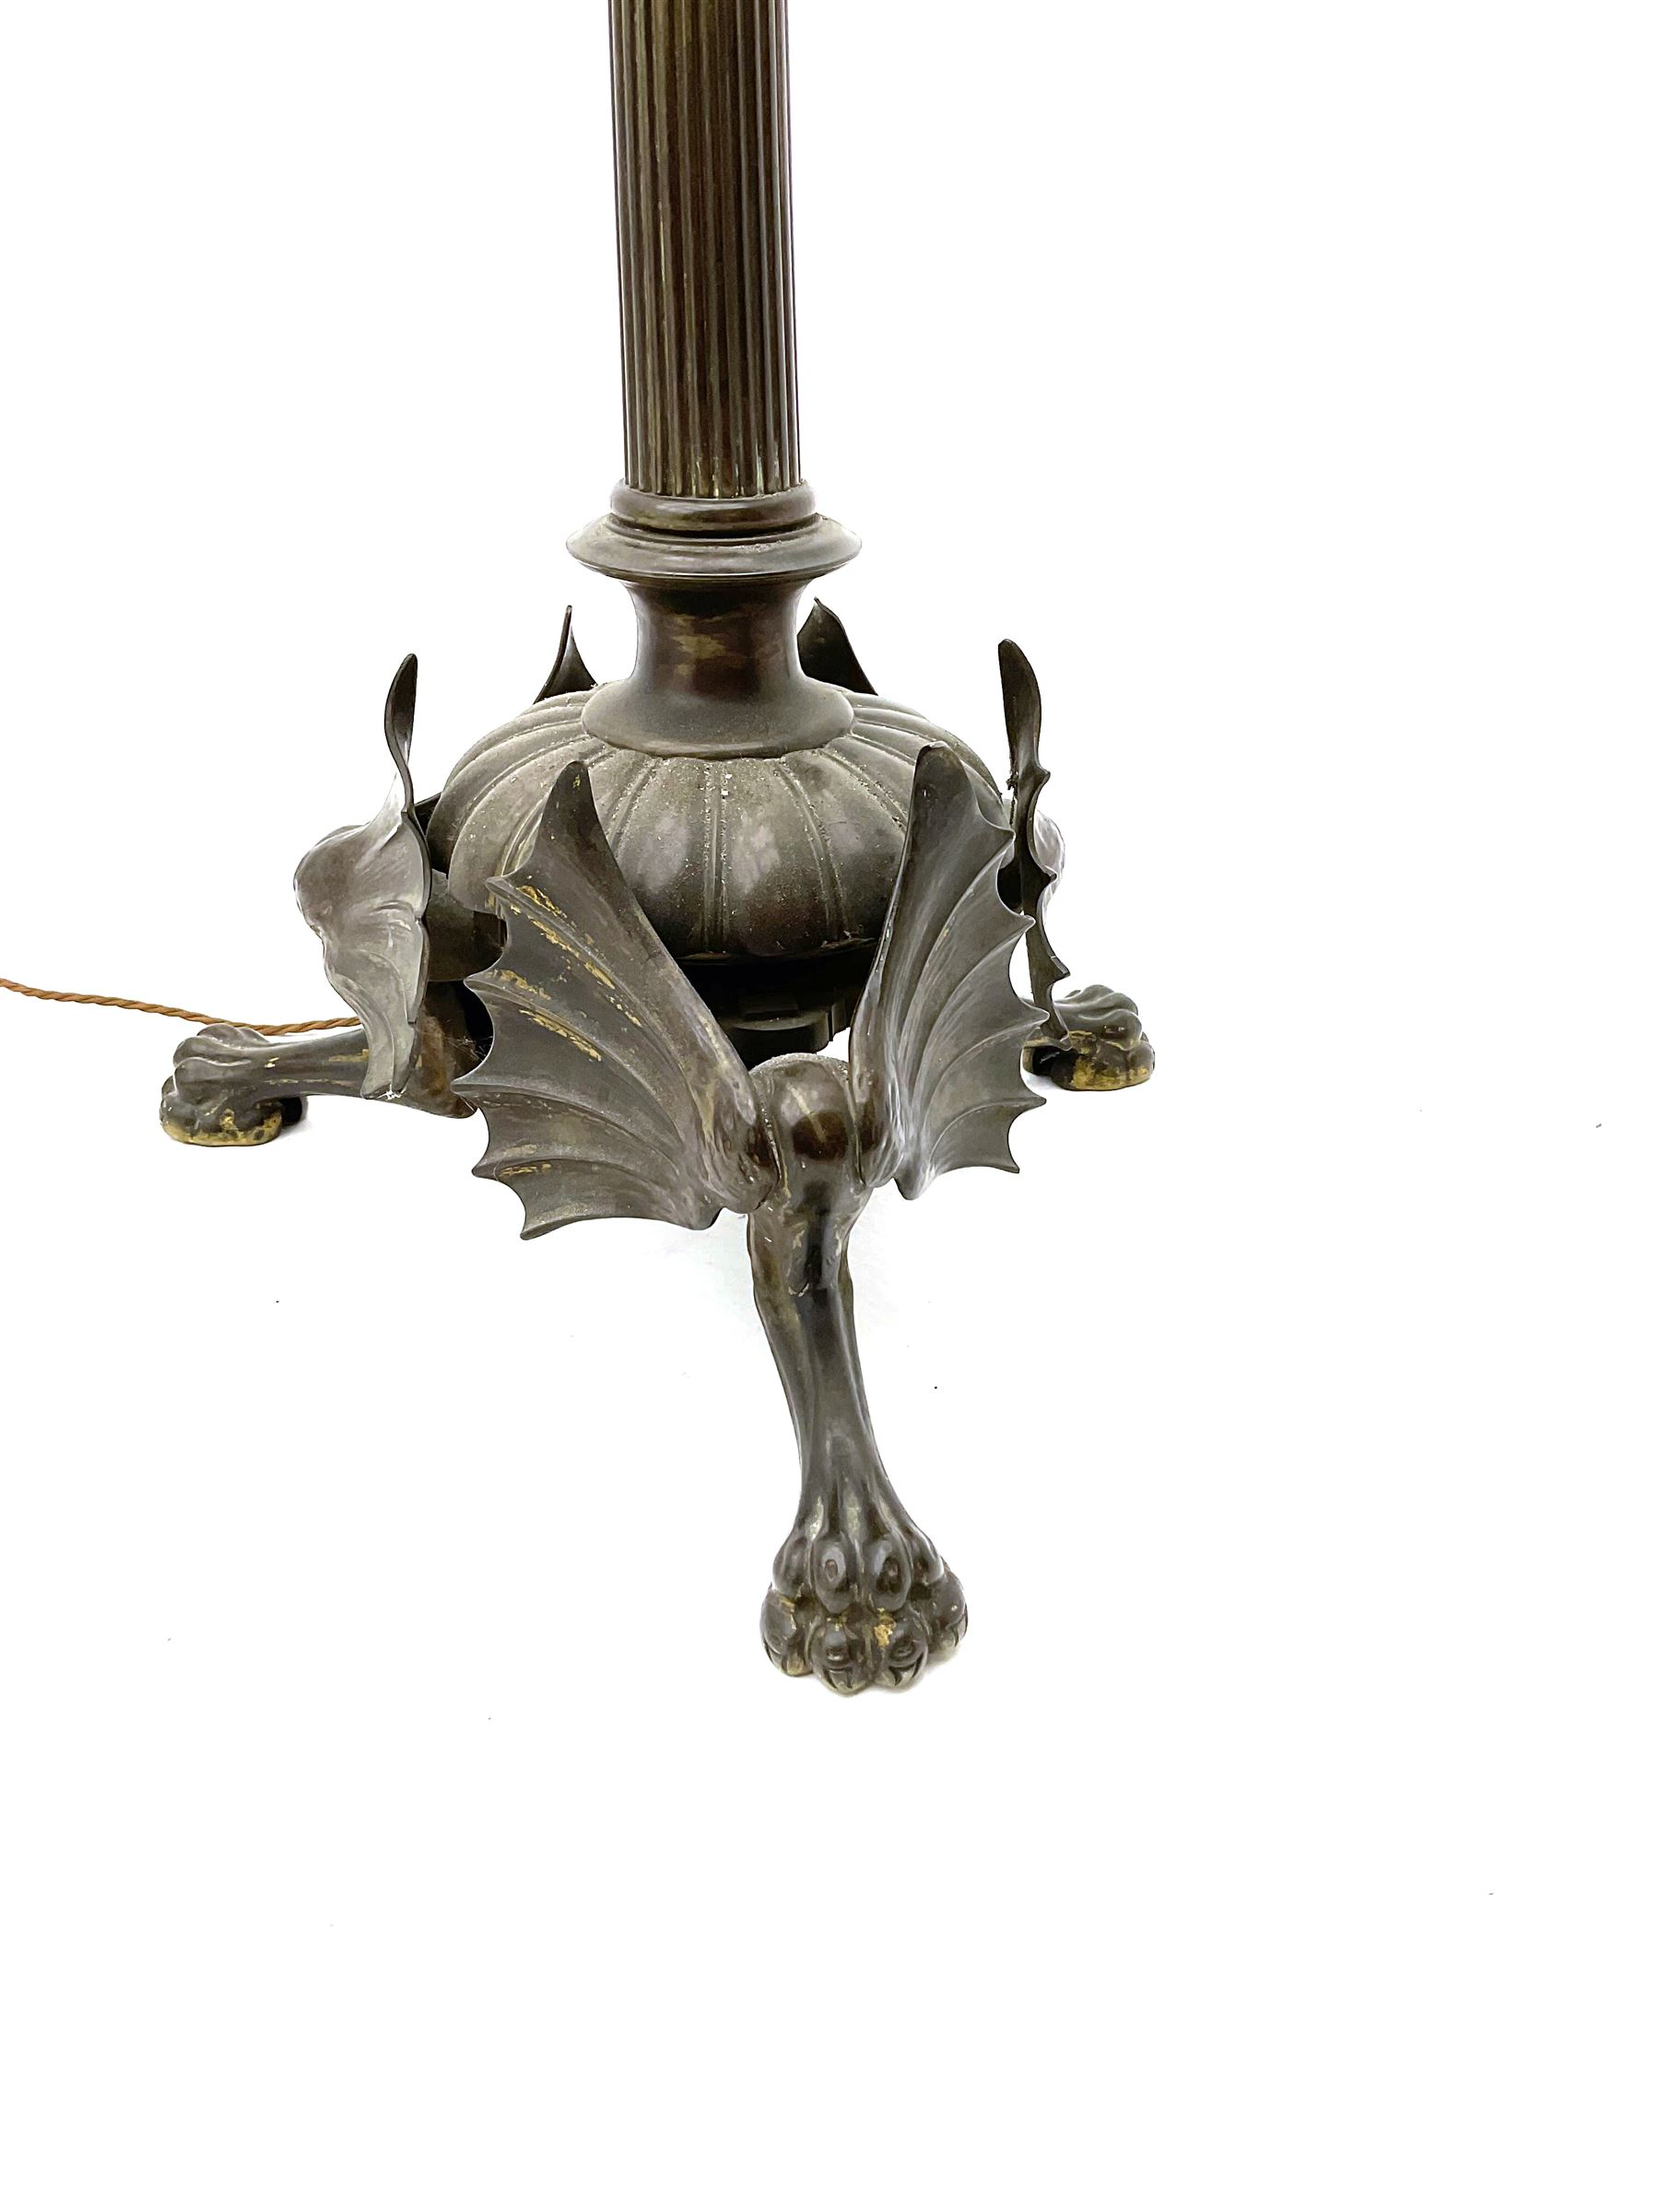 19th century heavy bronze floor standing lamp with traces of gilding - Image 2 of 3